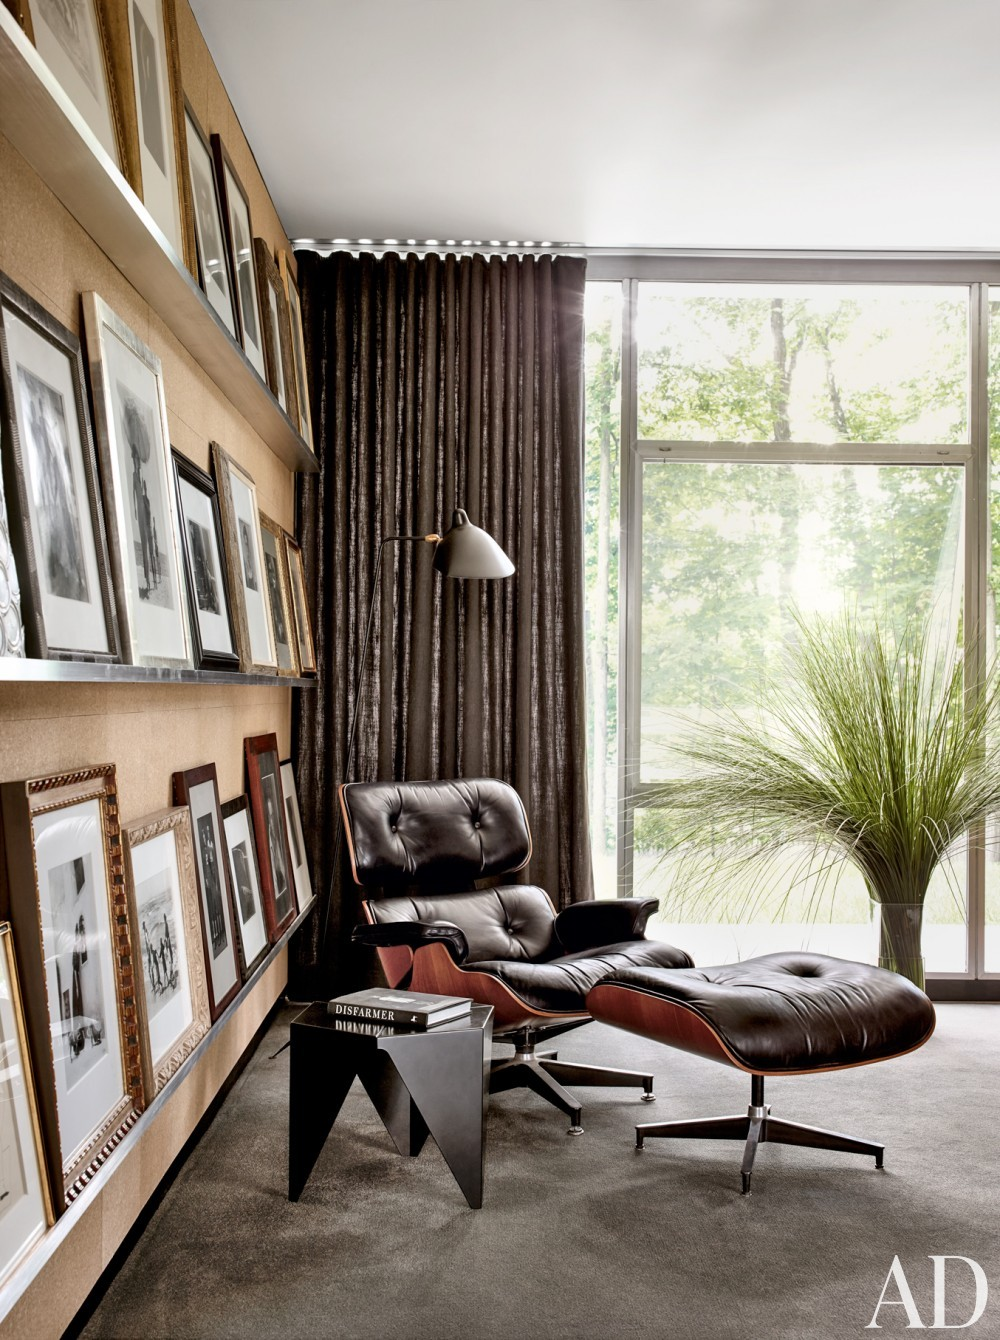 Office/Library by Brad Dunning in Briarcliff Manor, NY